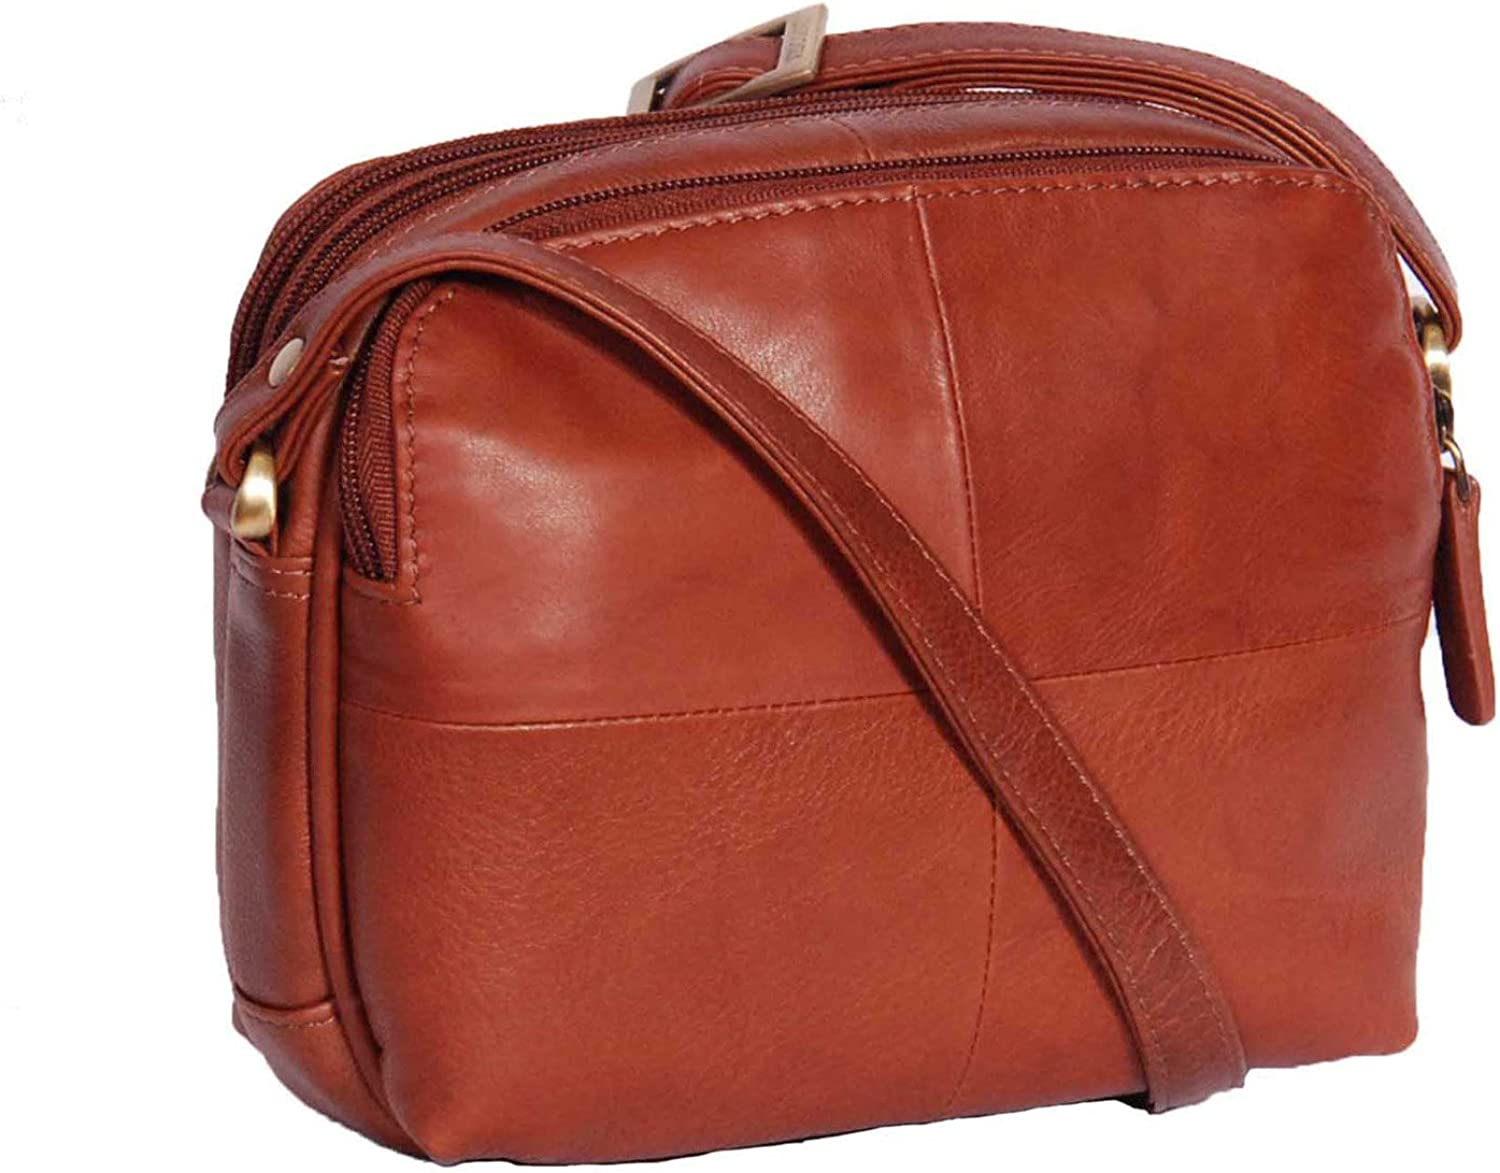 Womens Real Leather Small Organiser Travel Pouch Sling Shoulder Bag Bari Brown